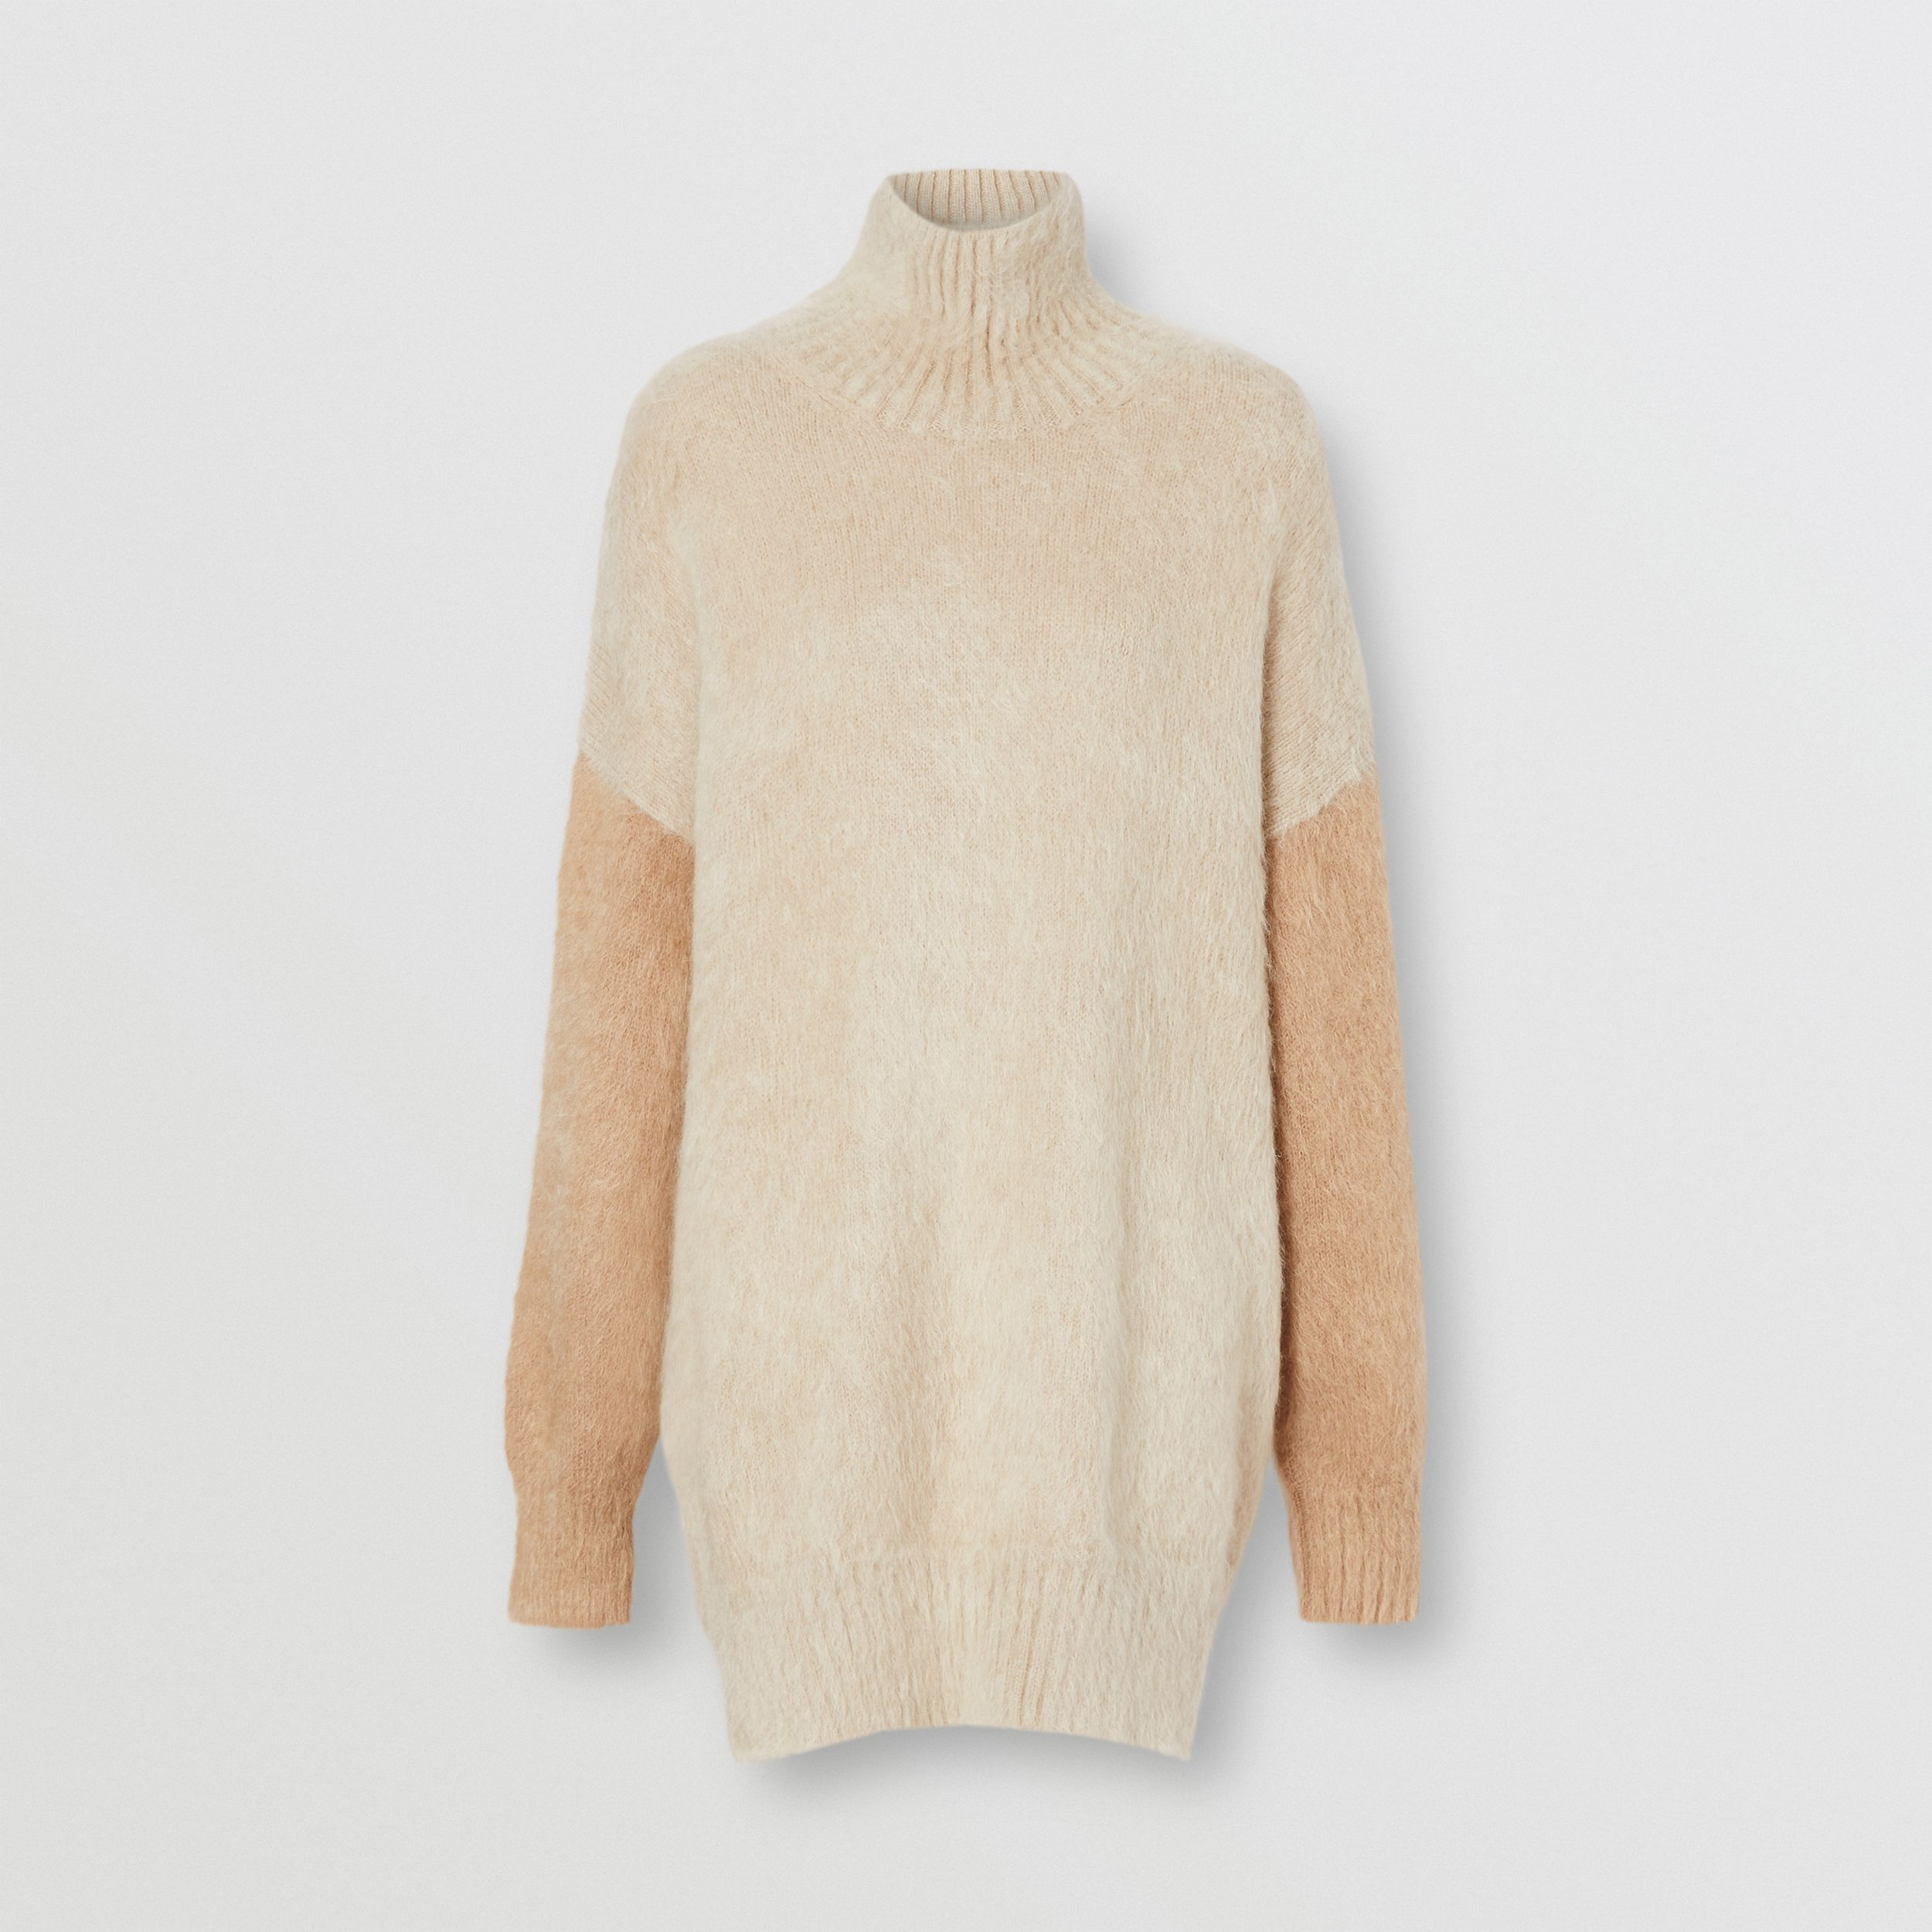 Wool Mohair Blend Oversized Turtleneck Sweater in Light Fawn - Women | Burberry - 4